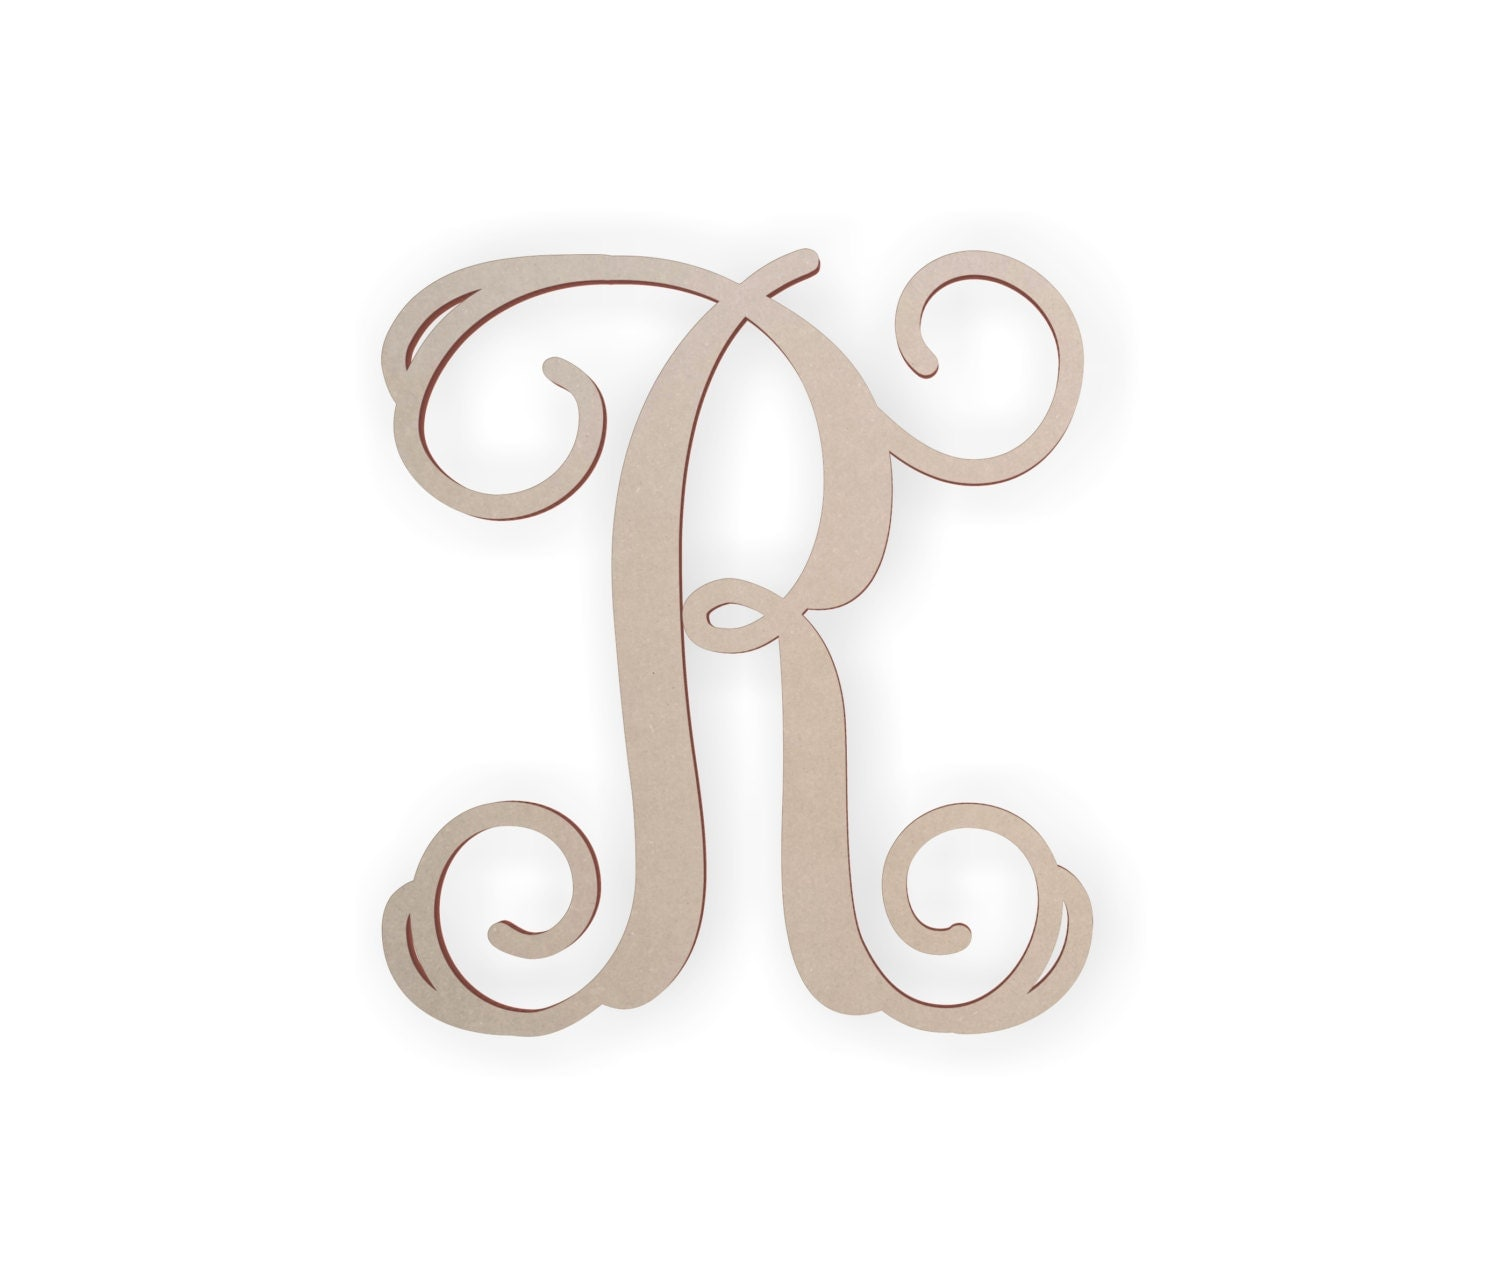 wooden wall letters wooden letters for wall script letter for door cursive 25680 | il fullxfull.978144126 jy6i